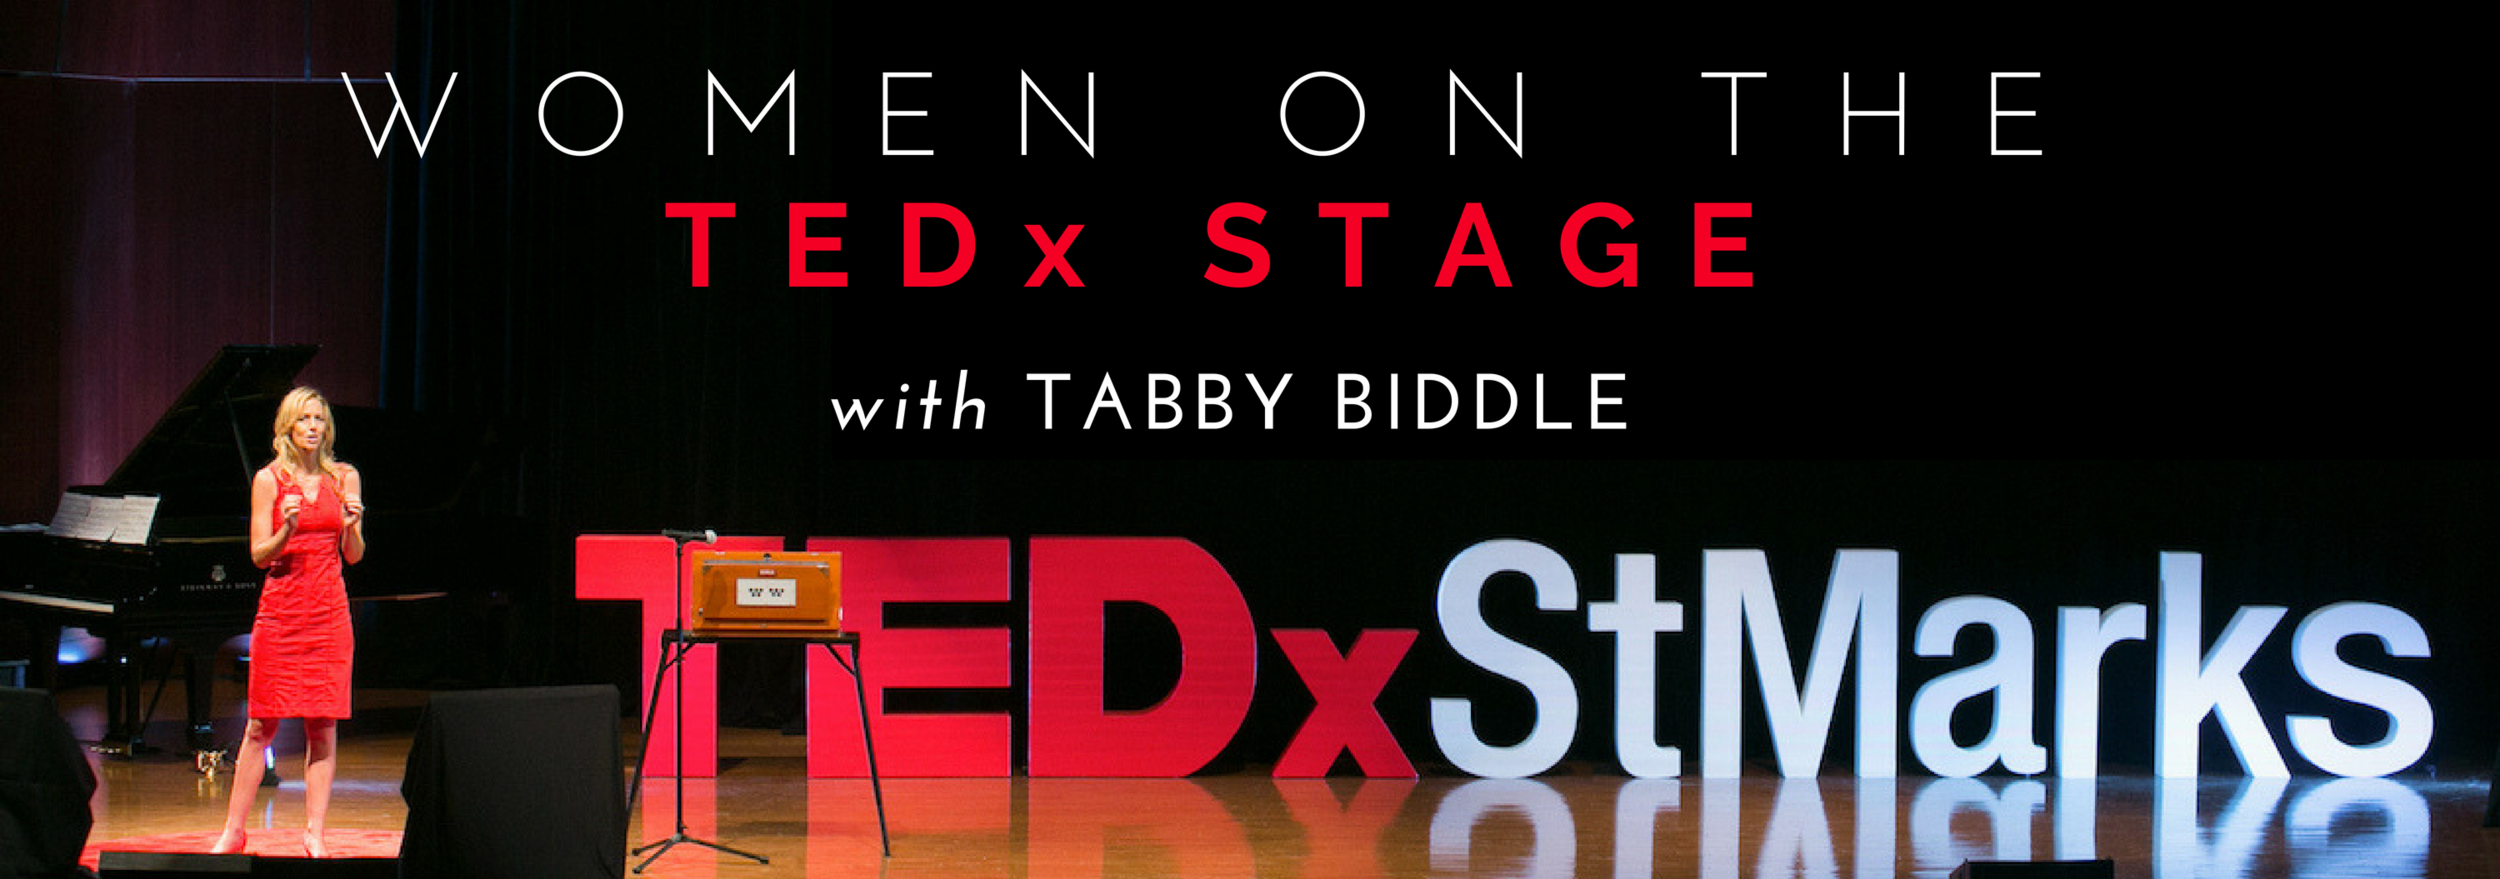 Women-On-The-TEDX-Stage.png